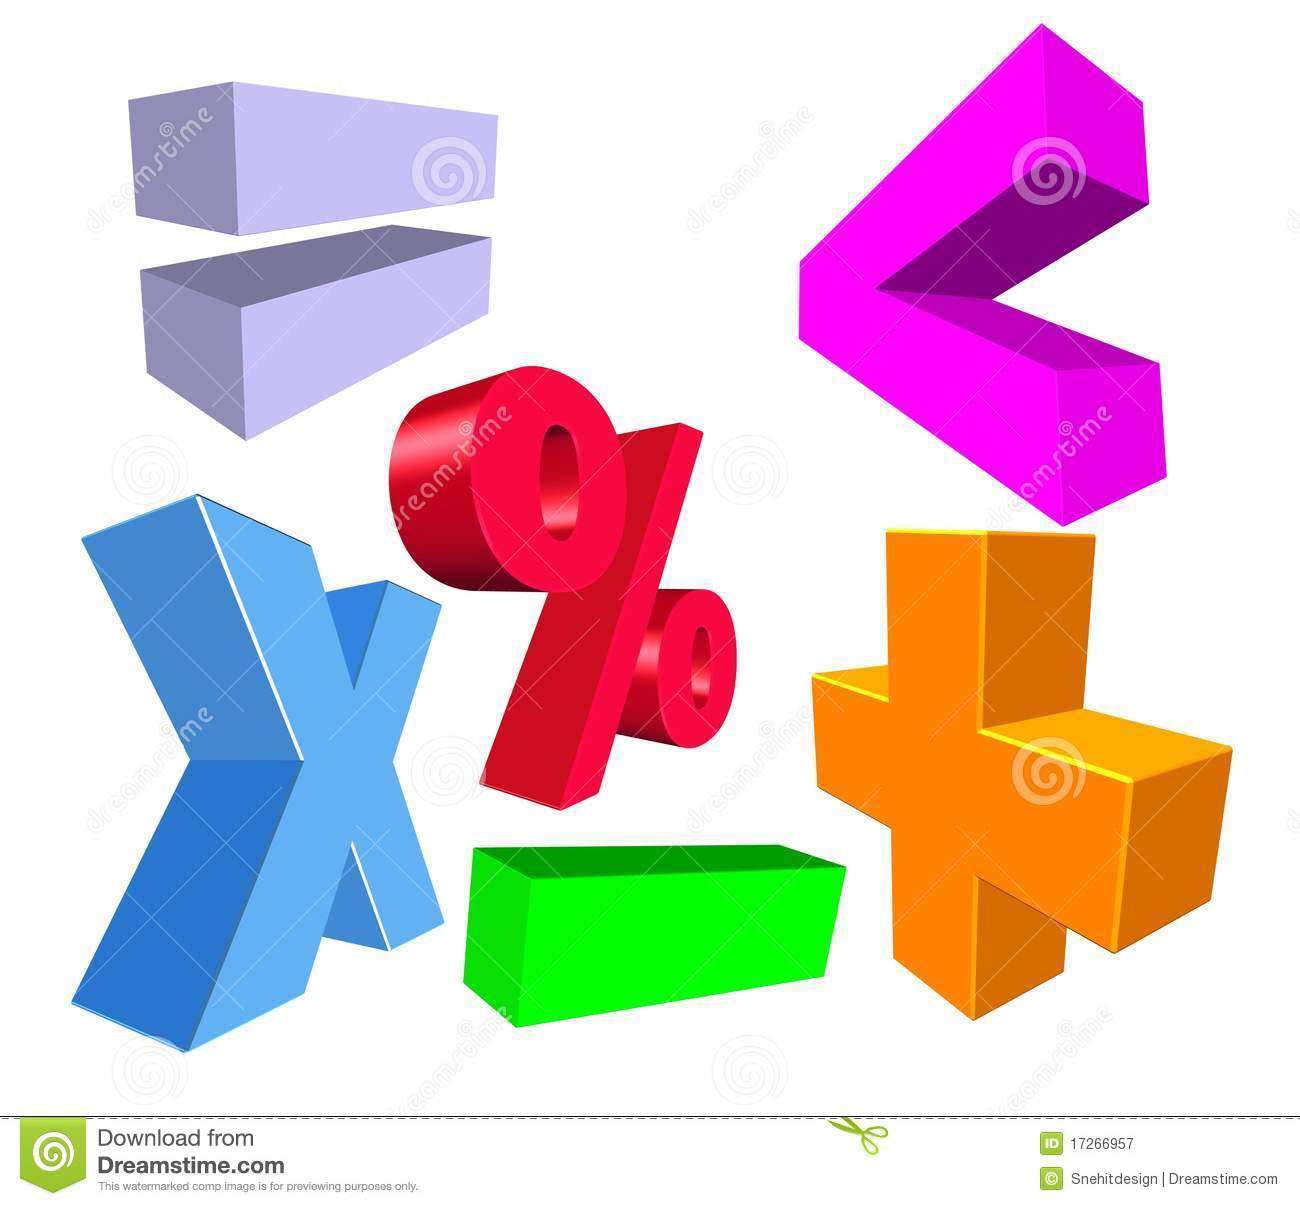 3d math symbols stock illustration illustration of signs 17266957 3d math symbols biocorpaavc Gallery